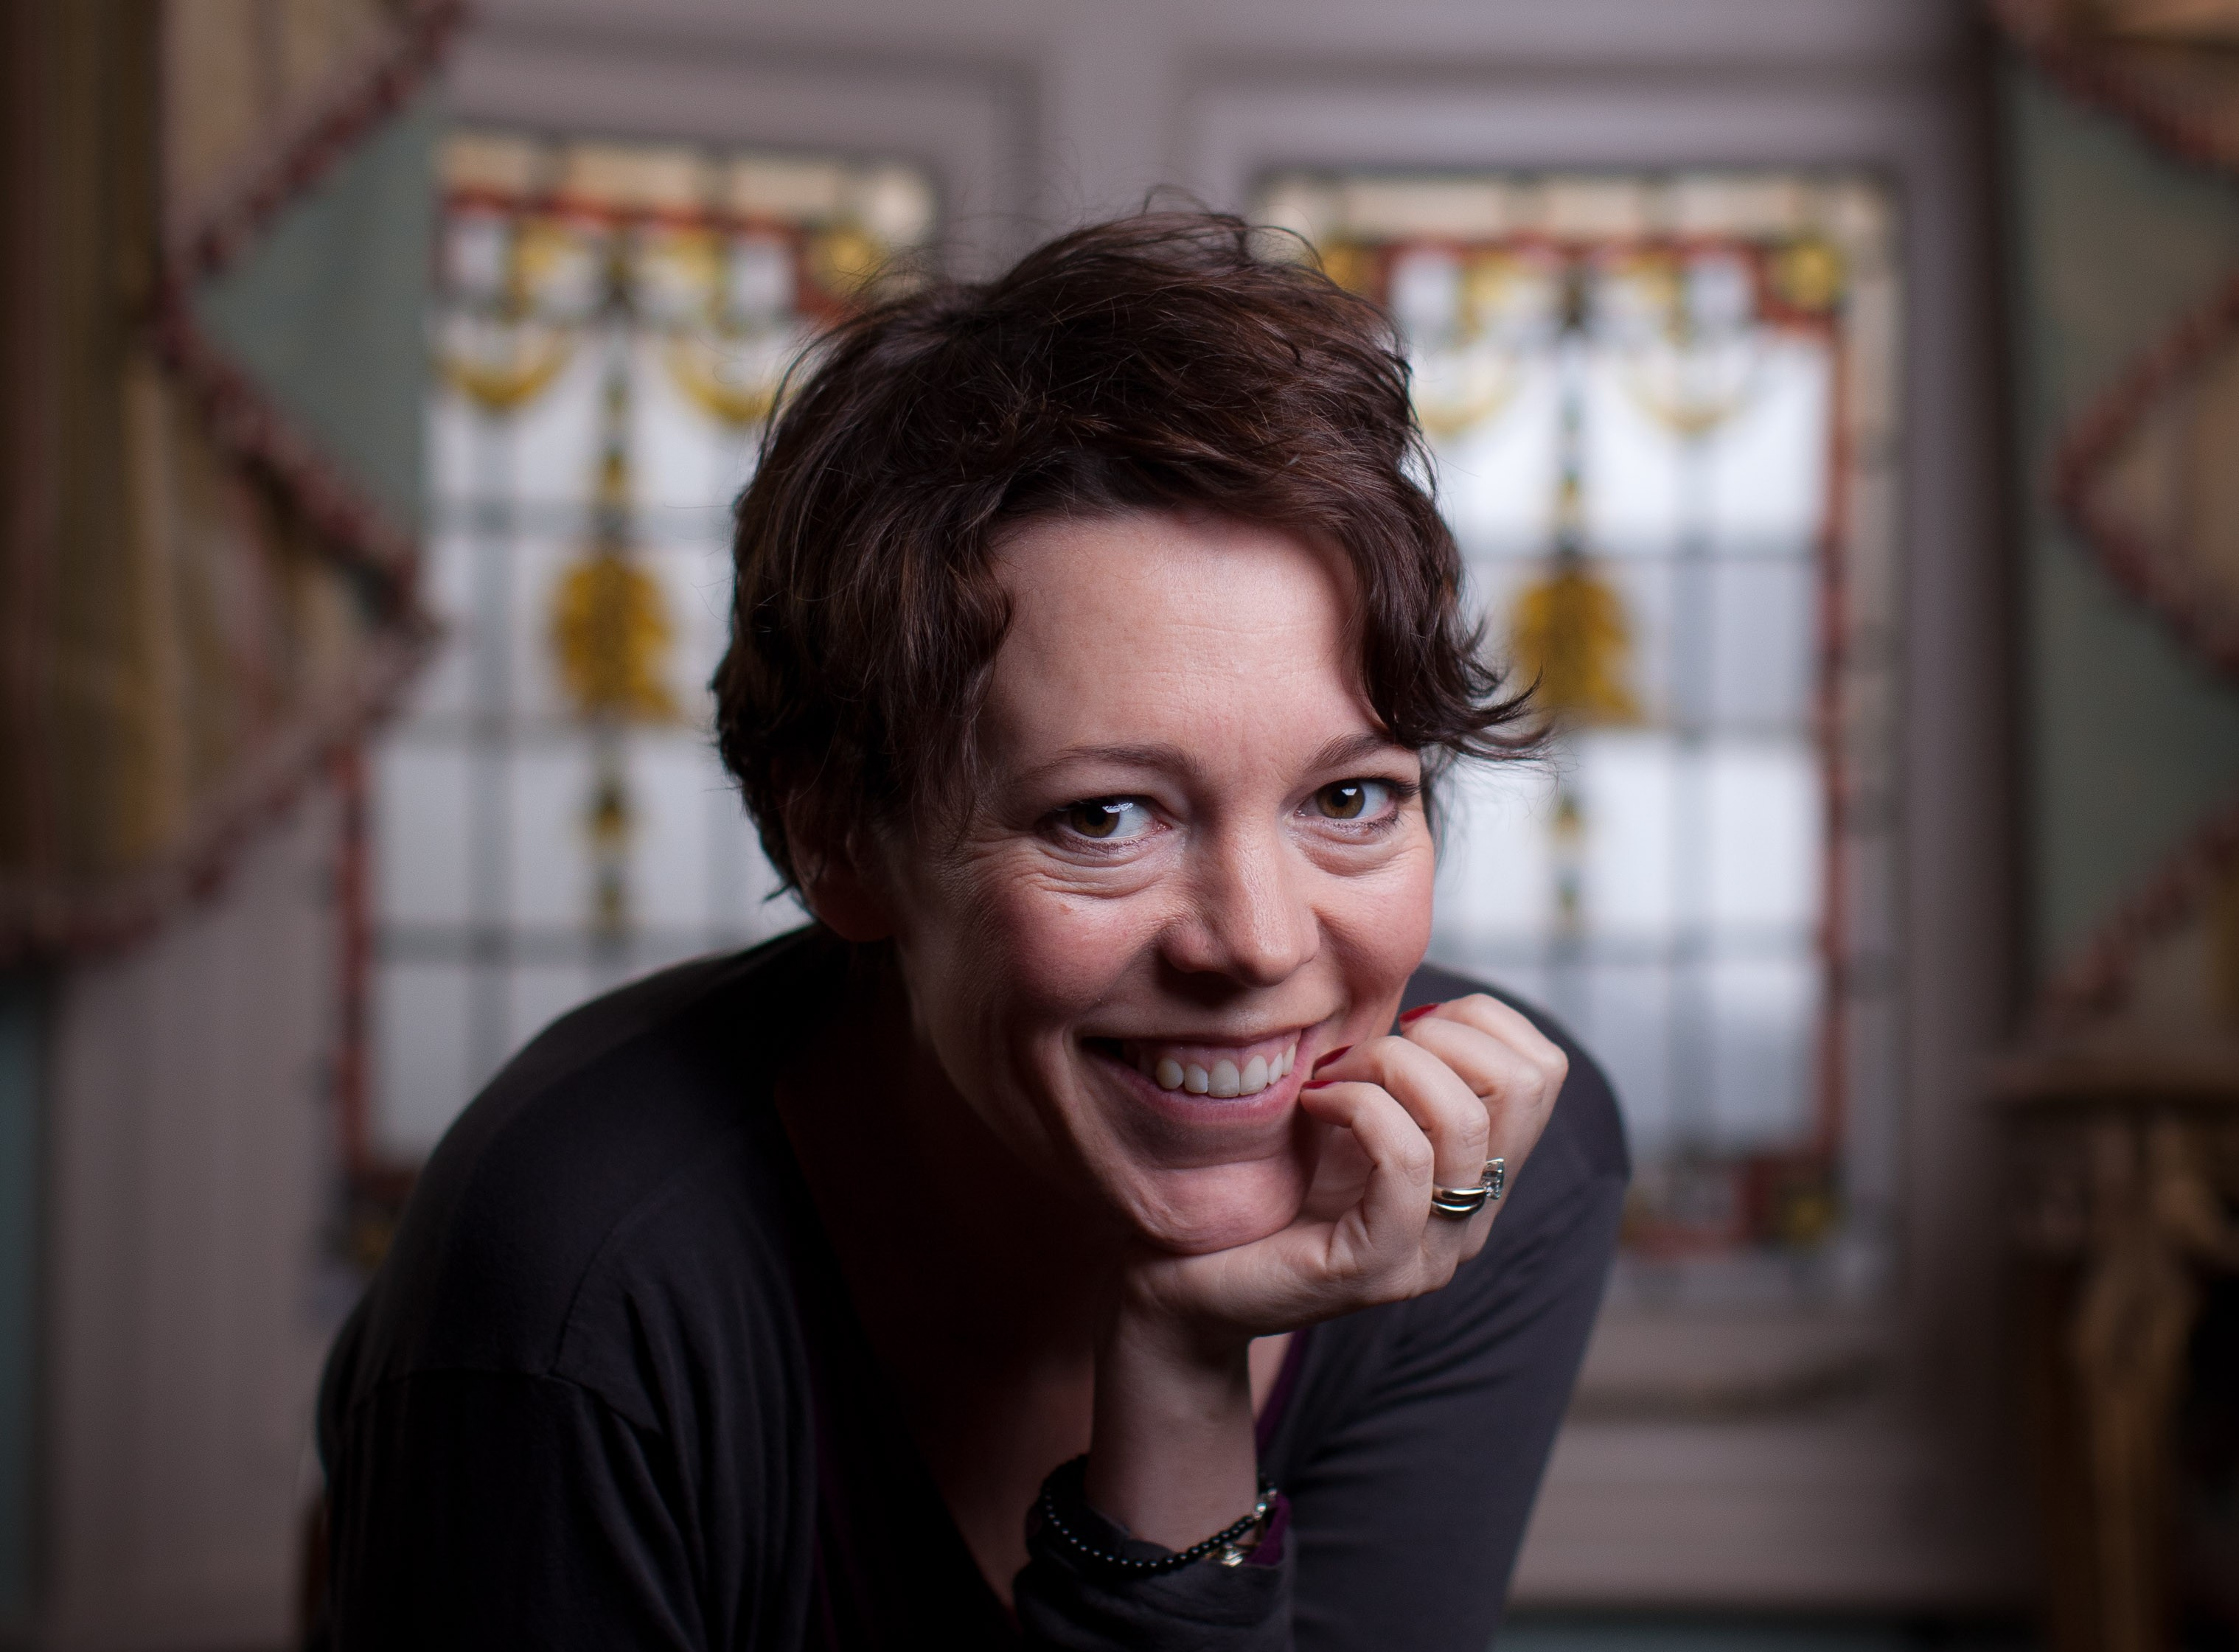 Olivia Colman: I can see why Hollywood haven't called – I look like a normal woman